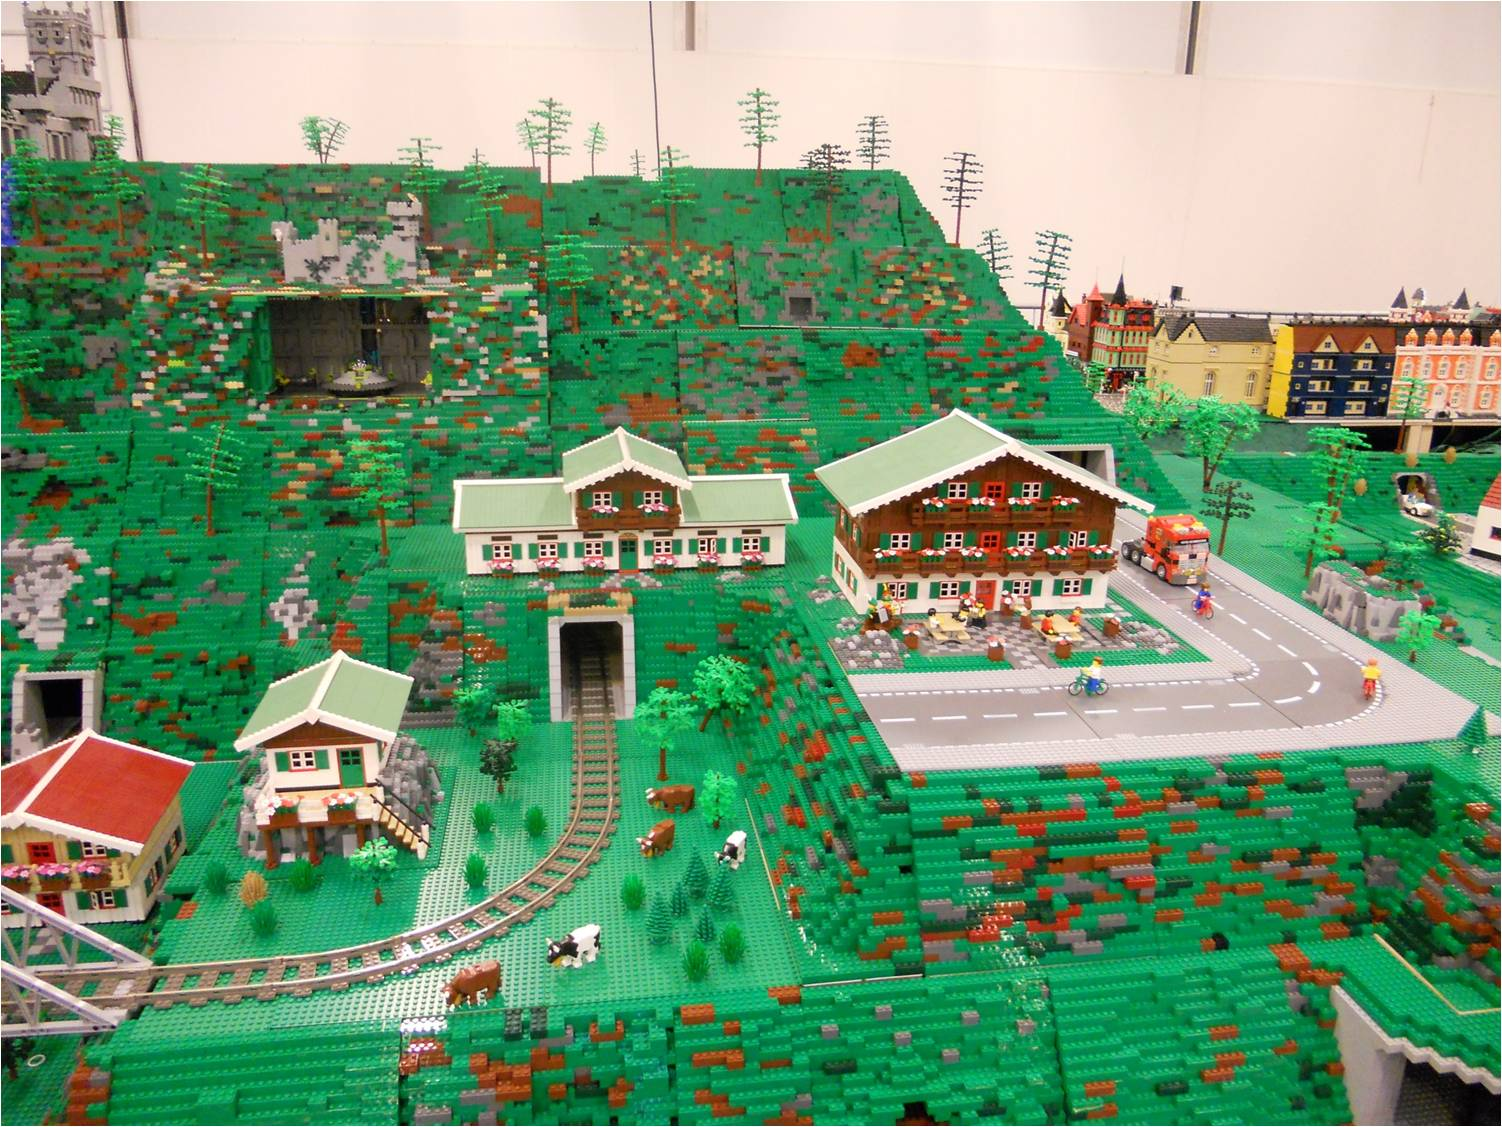 lego_world_047.jpg